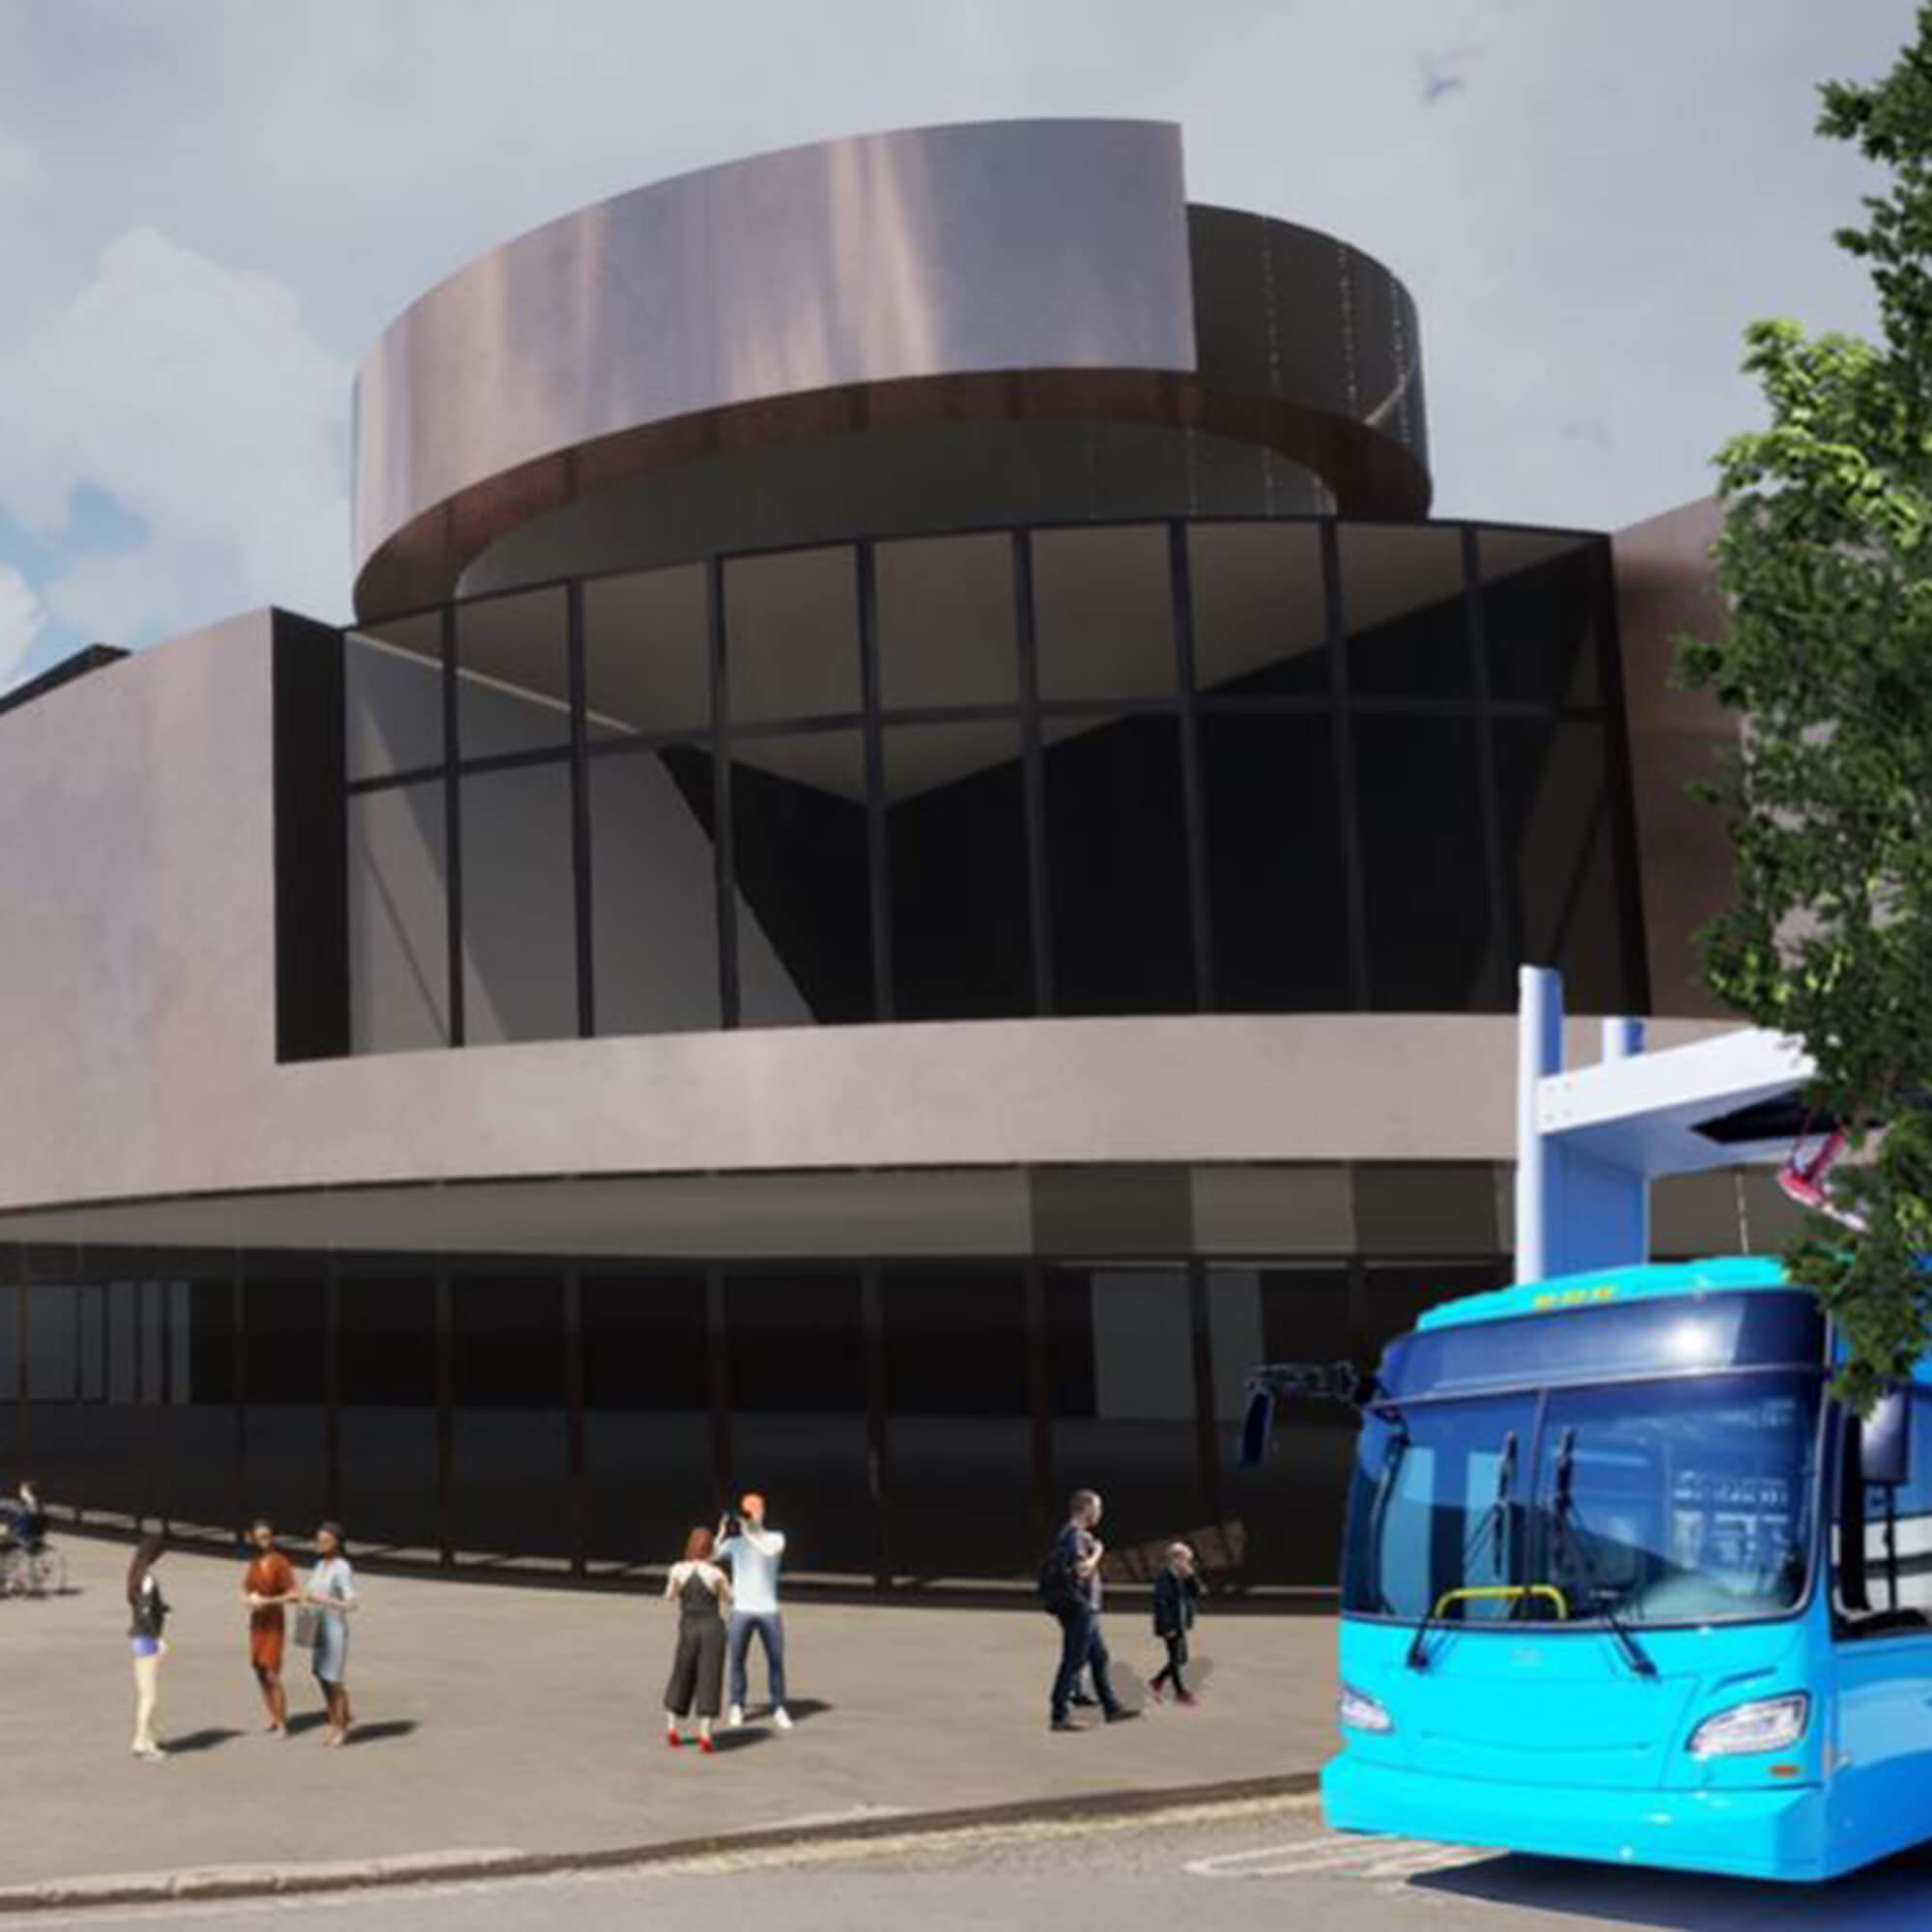 A modern city building with a bronze dome at the top with a bus driving past outside and people on the pavement outside of the building